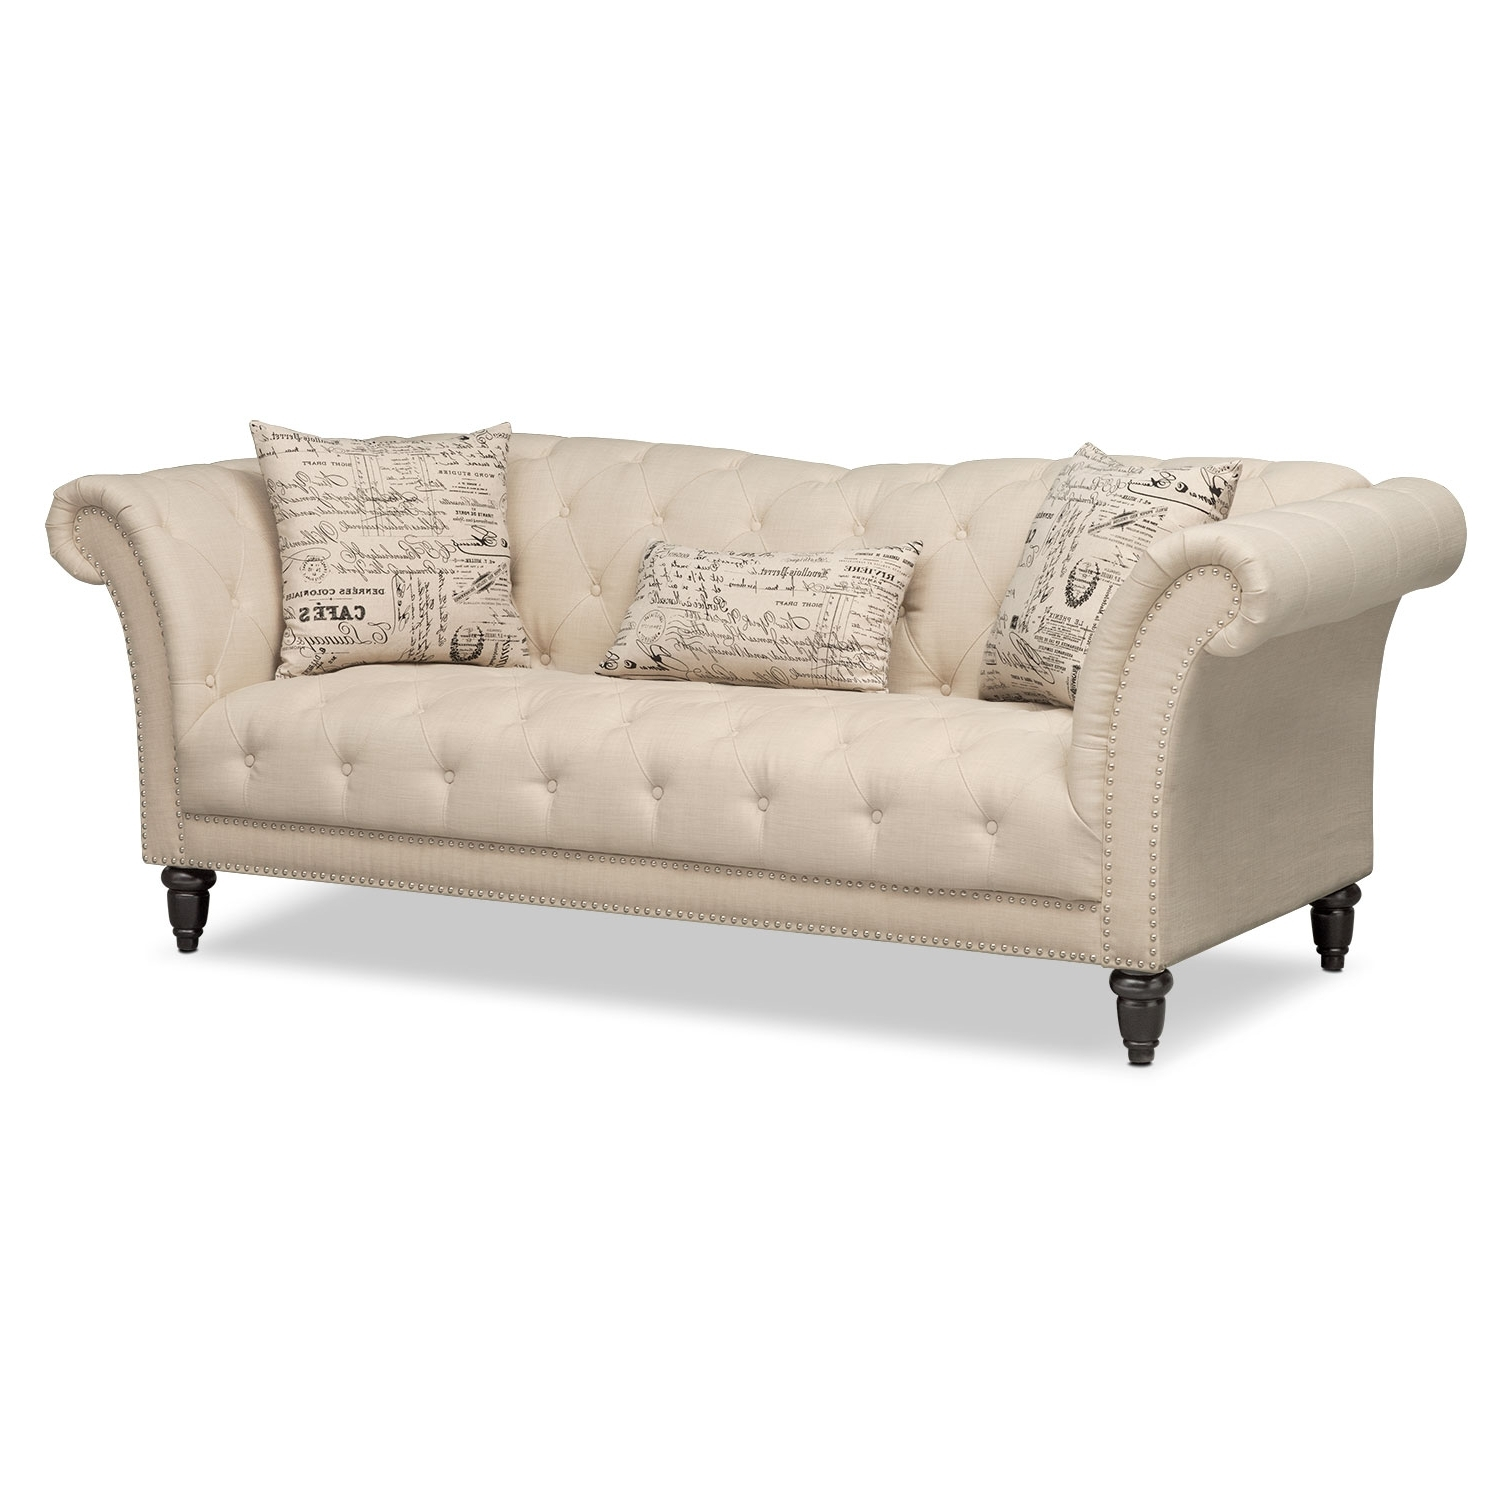 Value City Sofas Intended For Fashionable Marisol Sofa – Beige (View 10 of 15)